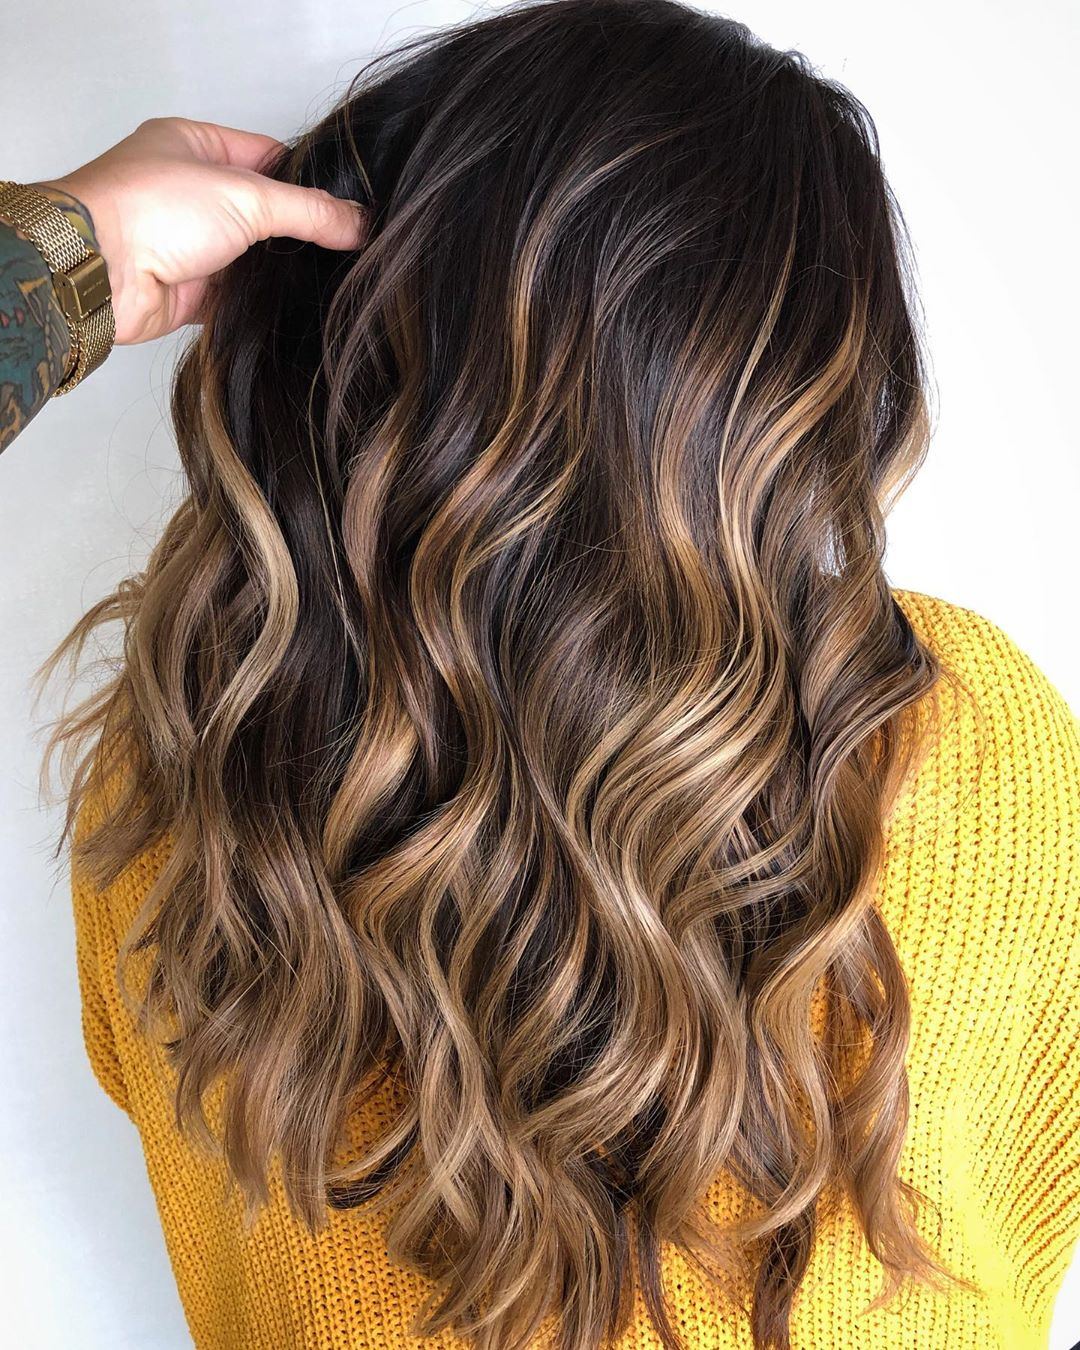 Brown and Sandy Blonde Balayage Hairstyle